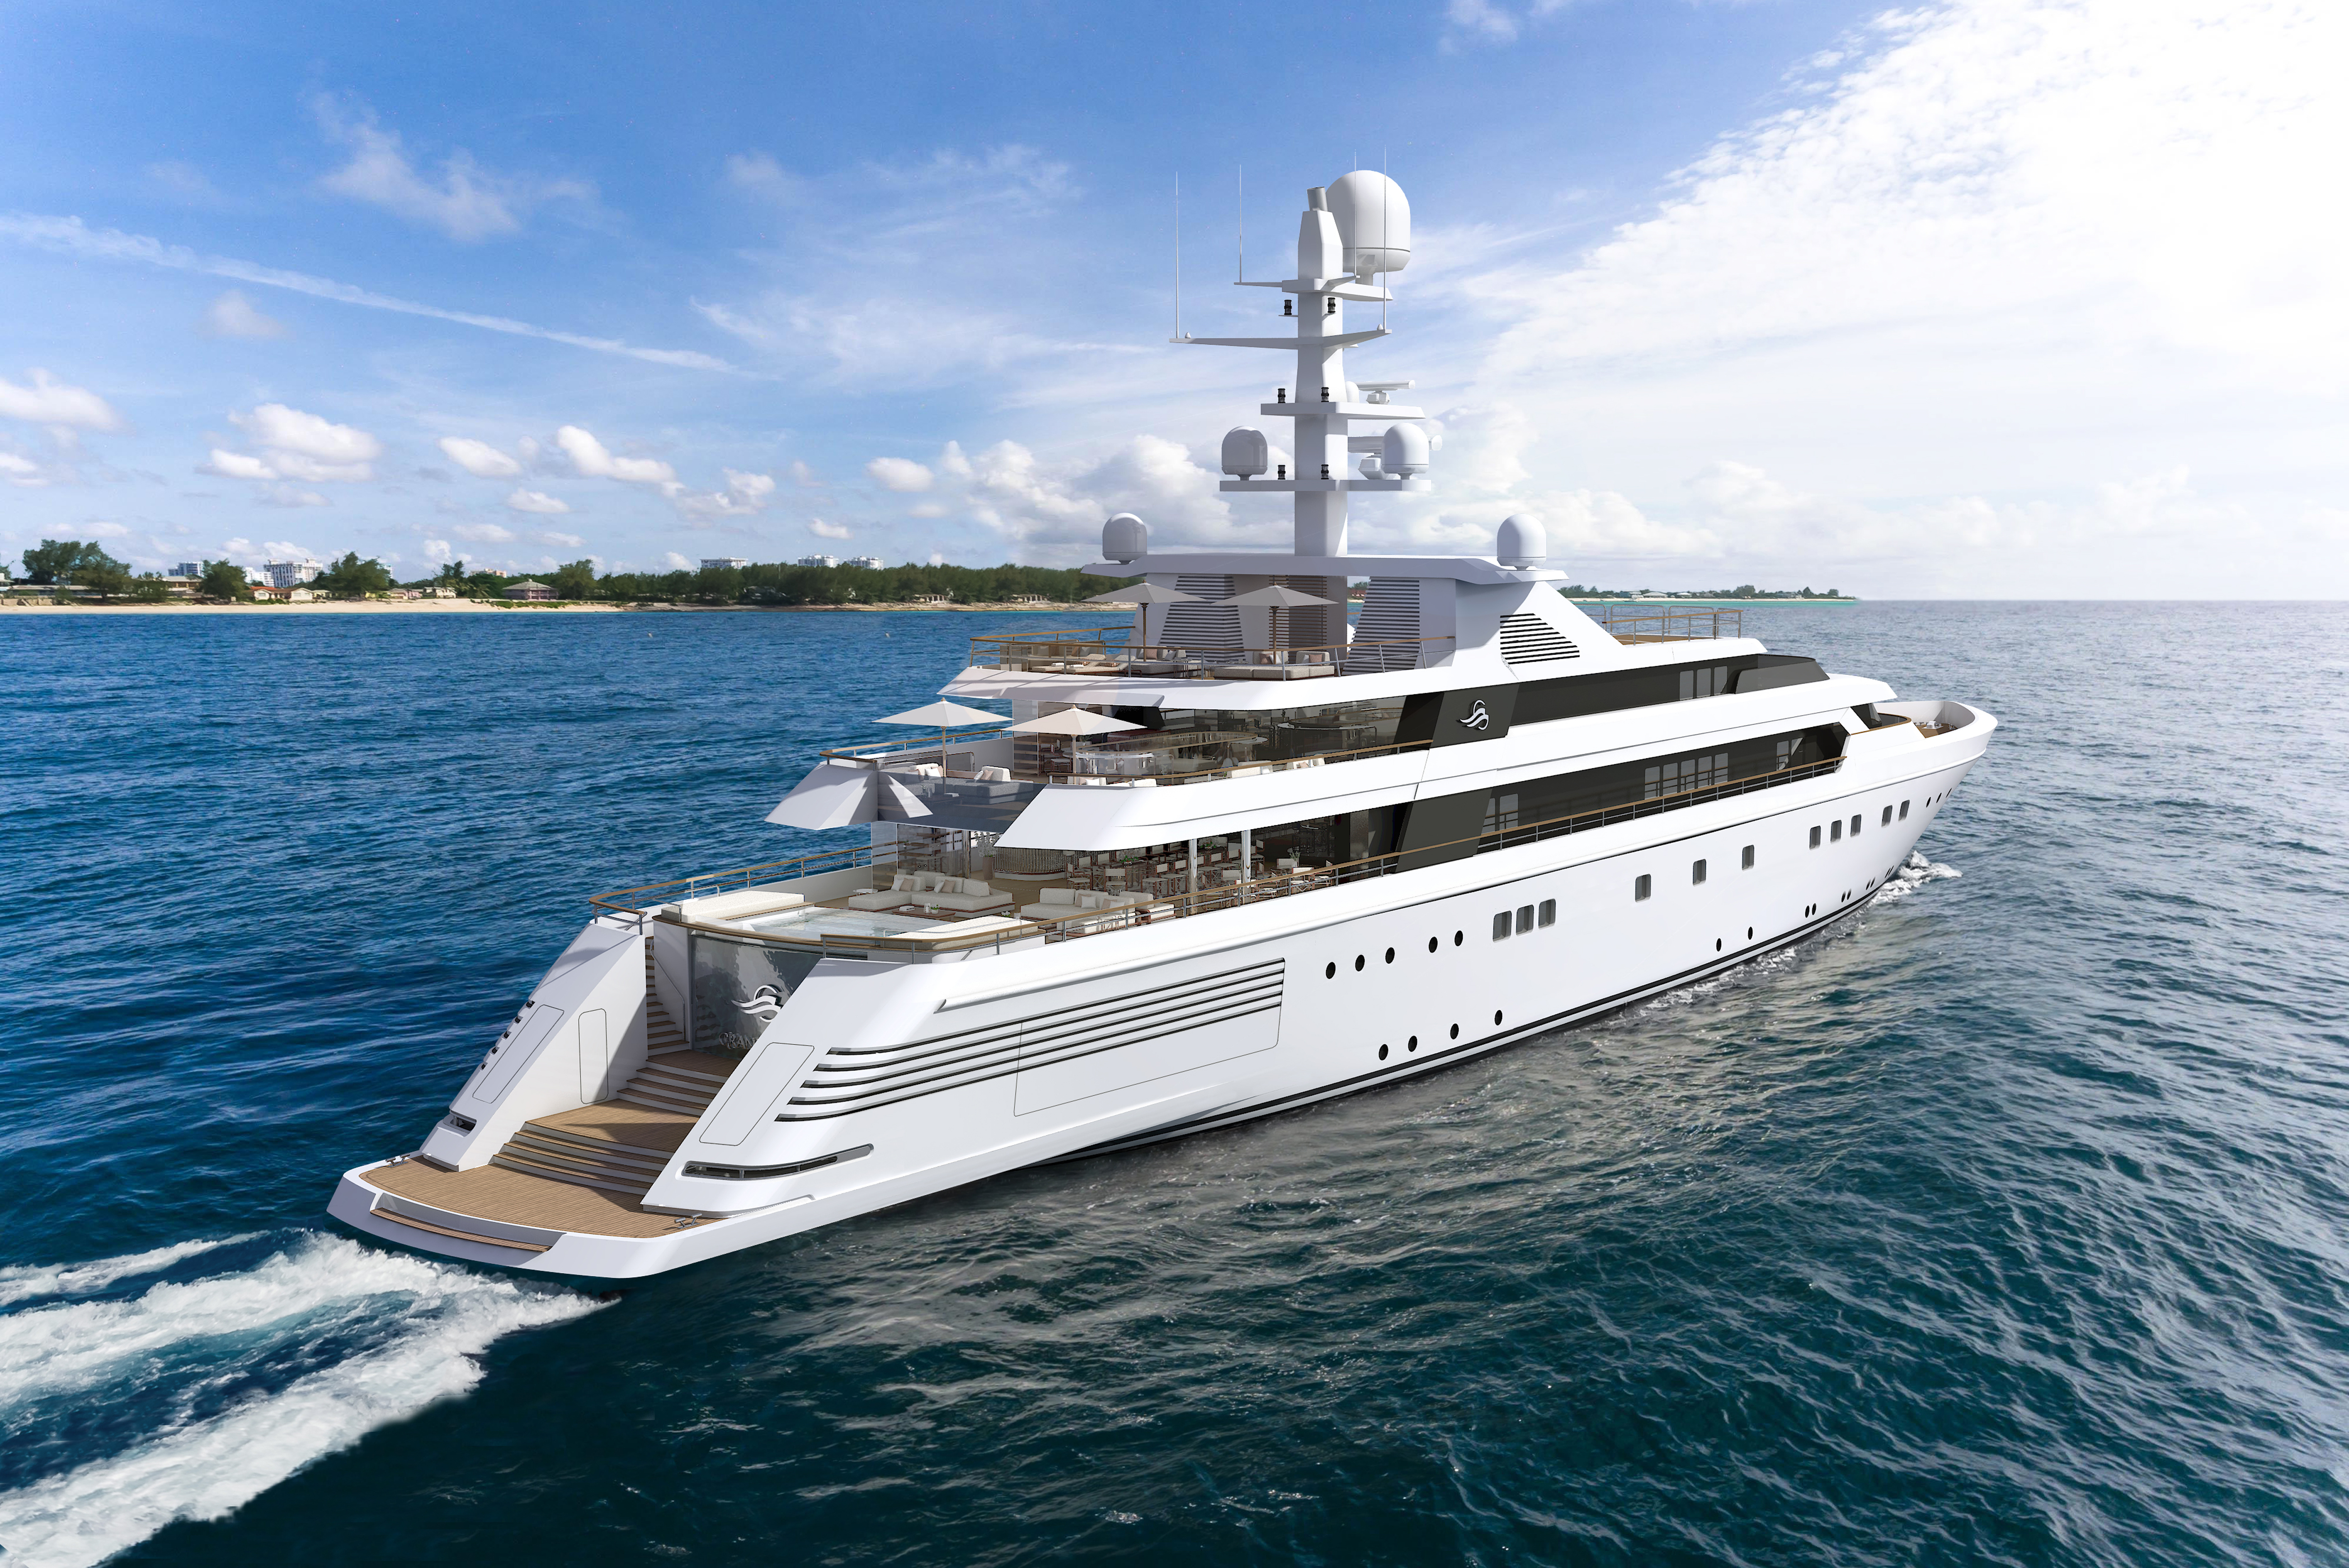 GRAND OCEAN specs with detailed specification and builder summary